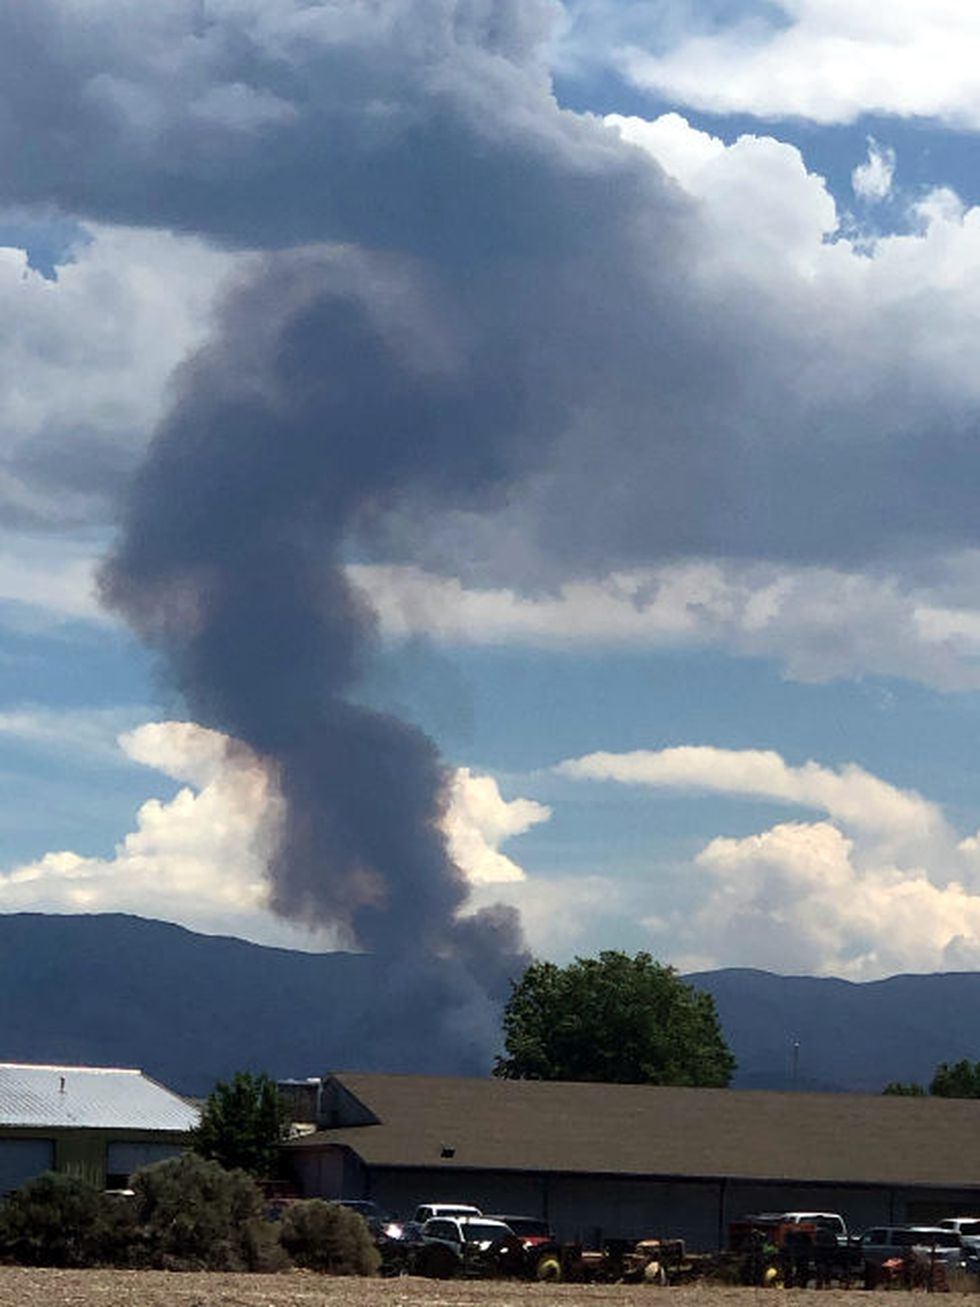 Val Hatcher submitted this photograph of the Monarch Fire in Douglas County.